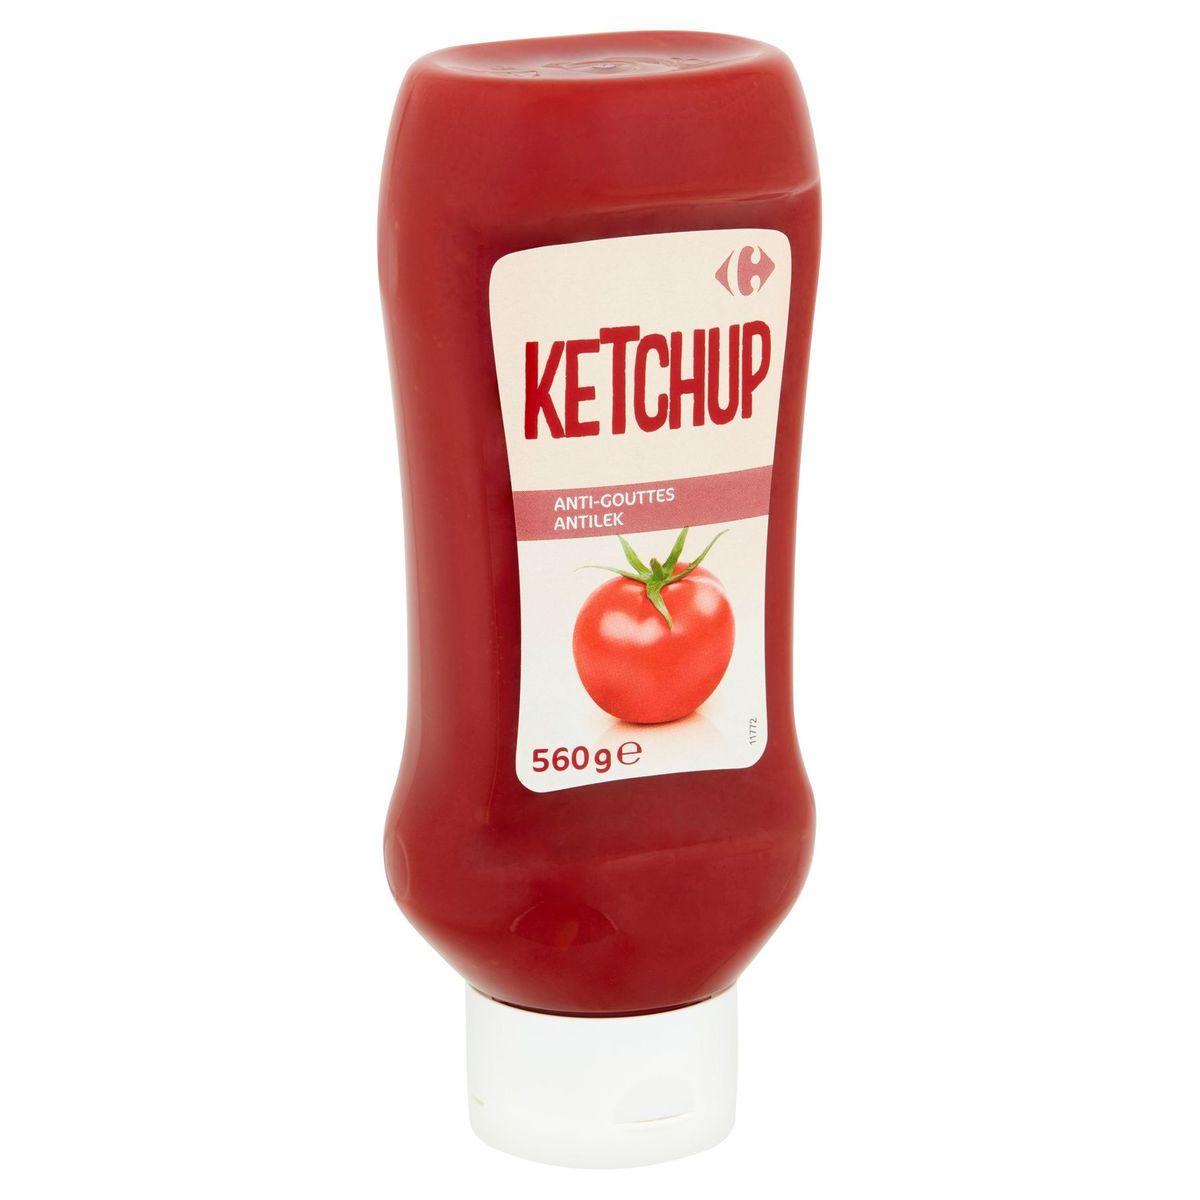 Carrefour Ketchup Anti-Gouttes 560 g